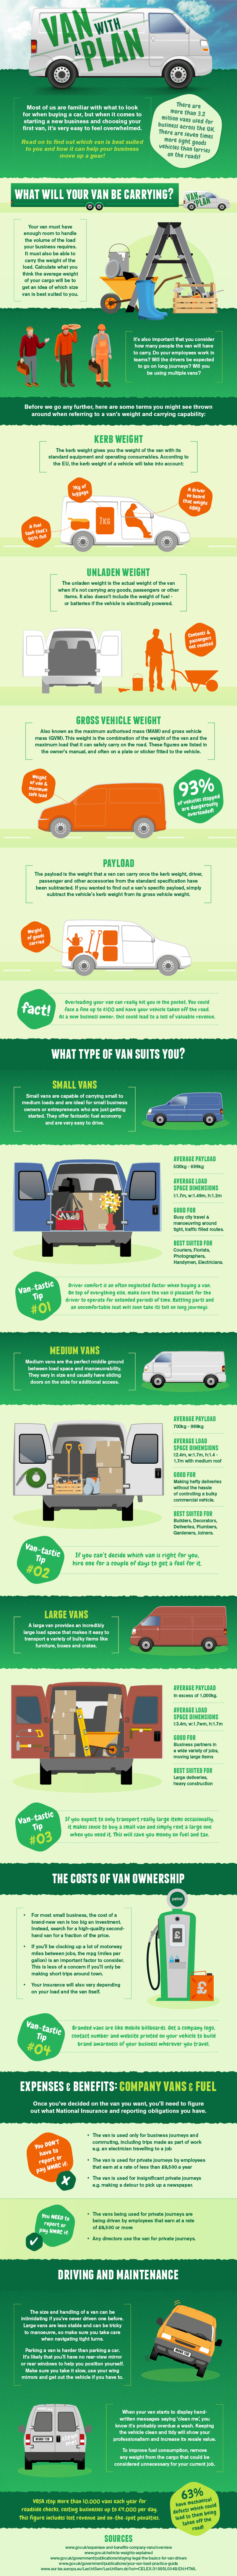 infographic-van-for-business